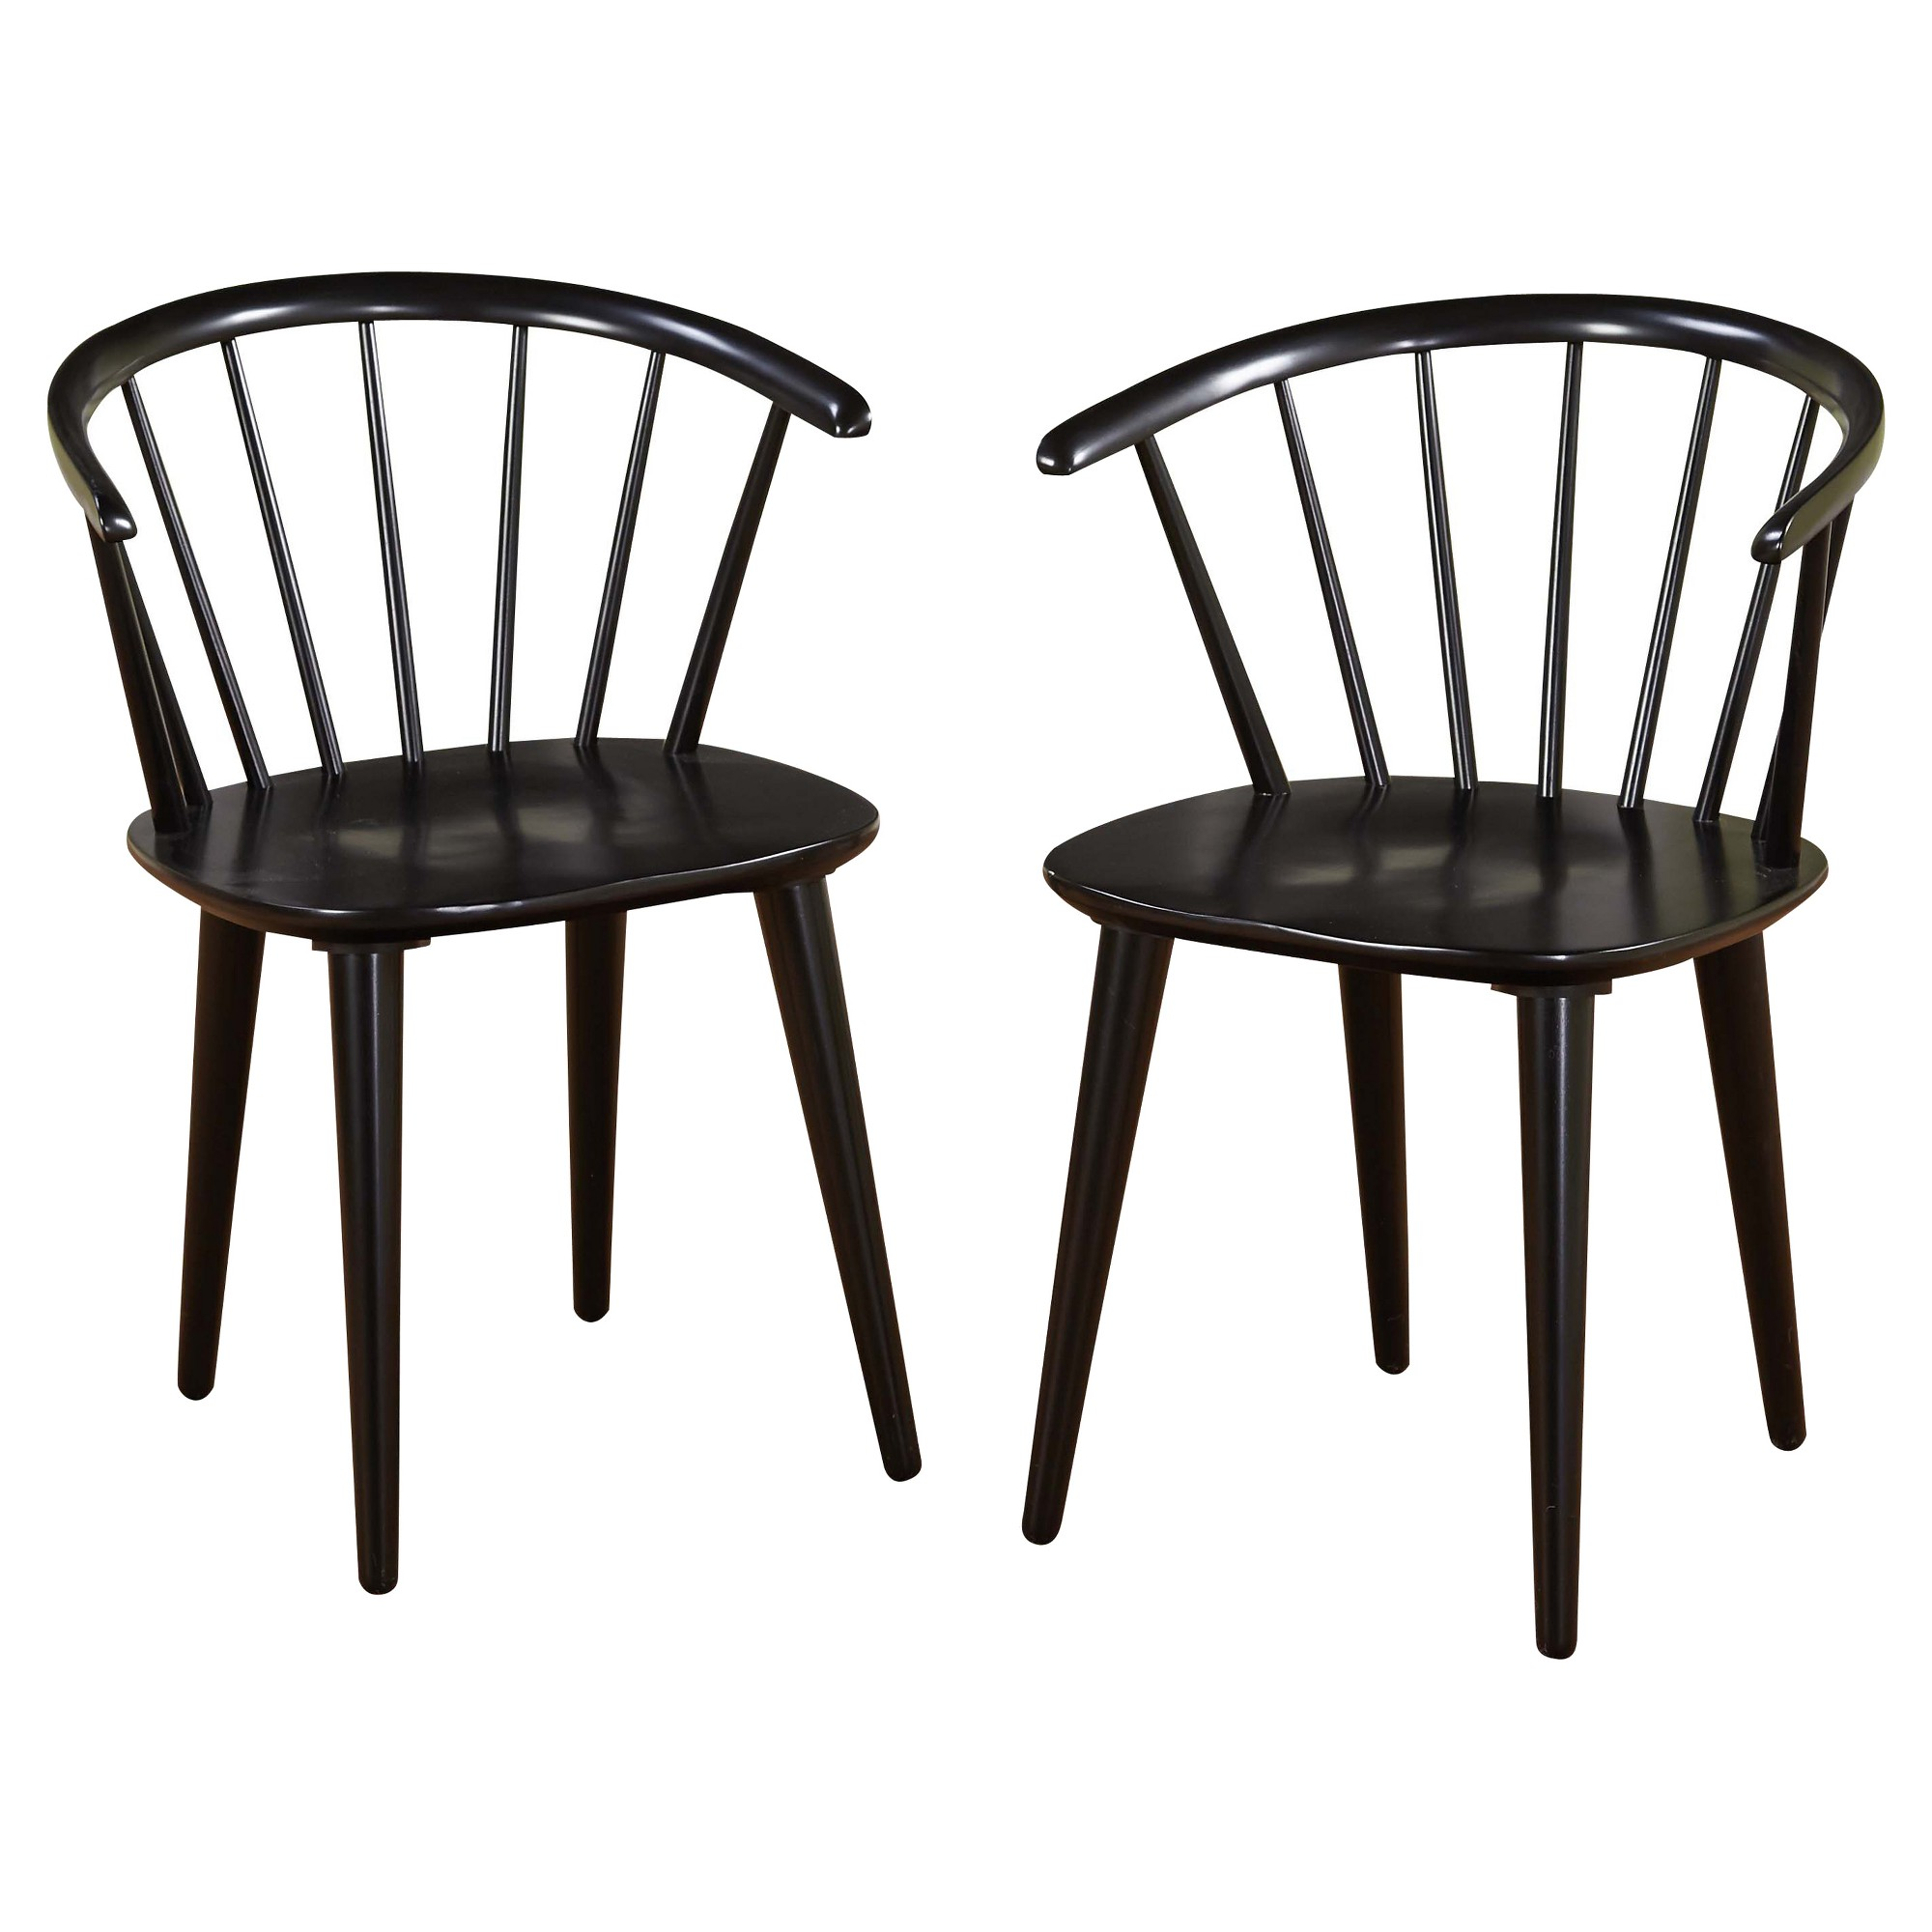 Set Of 2 Dining Chair Wood Black Low Back Dining Chairs Dining